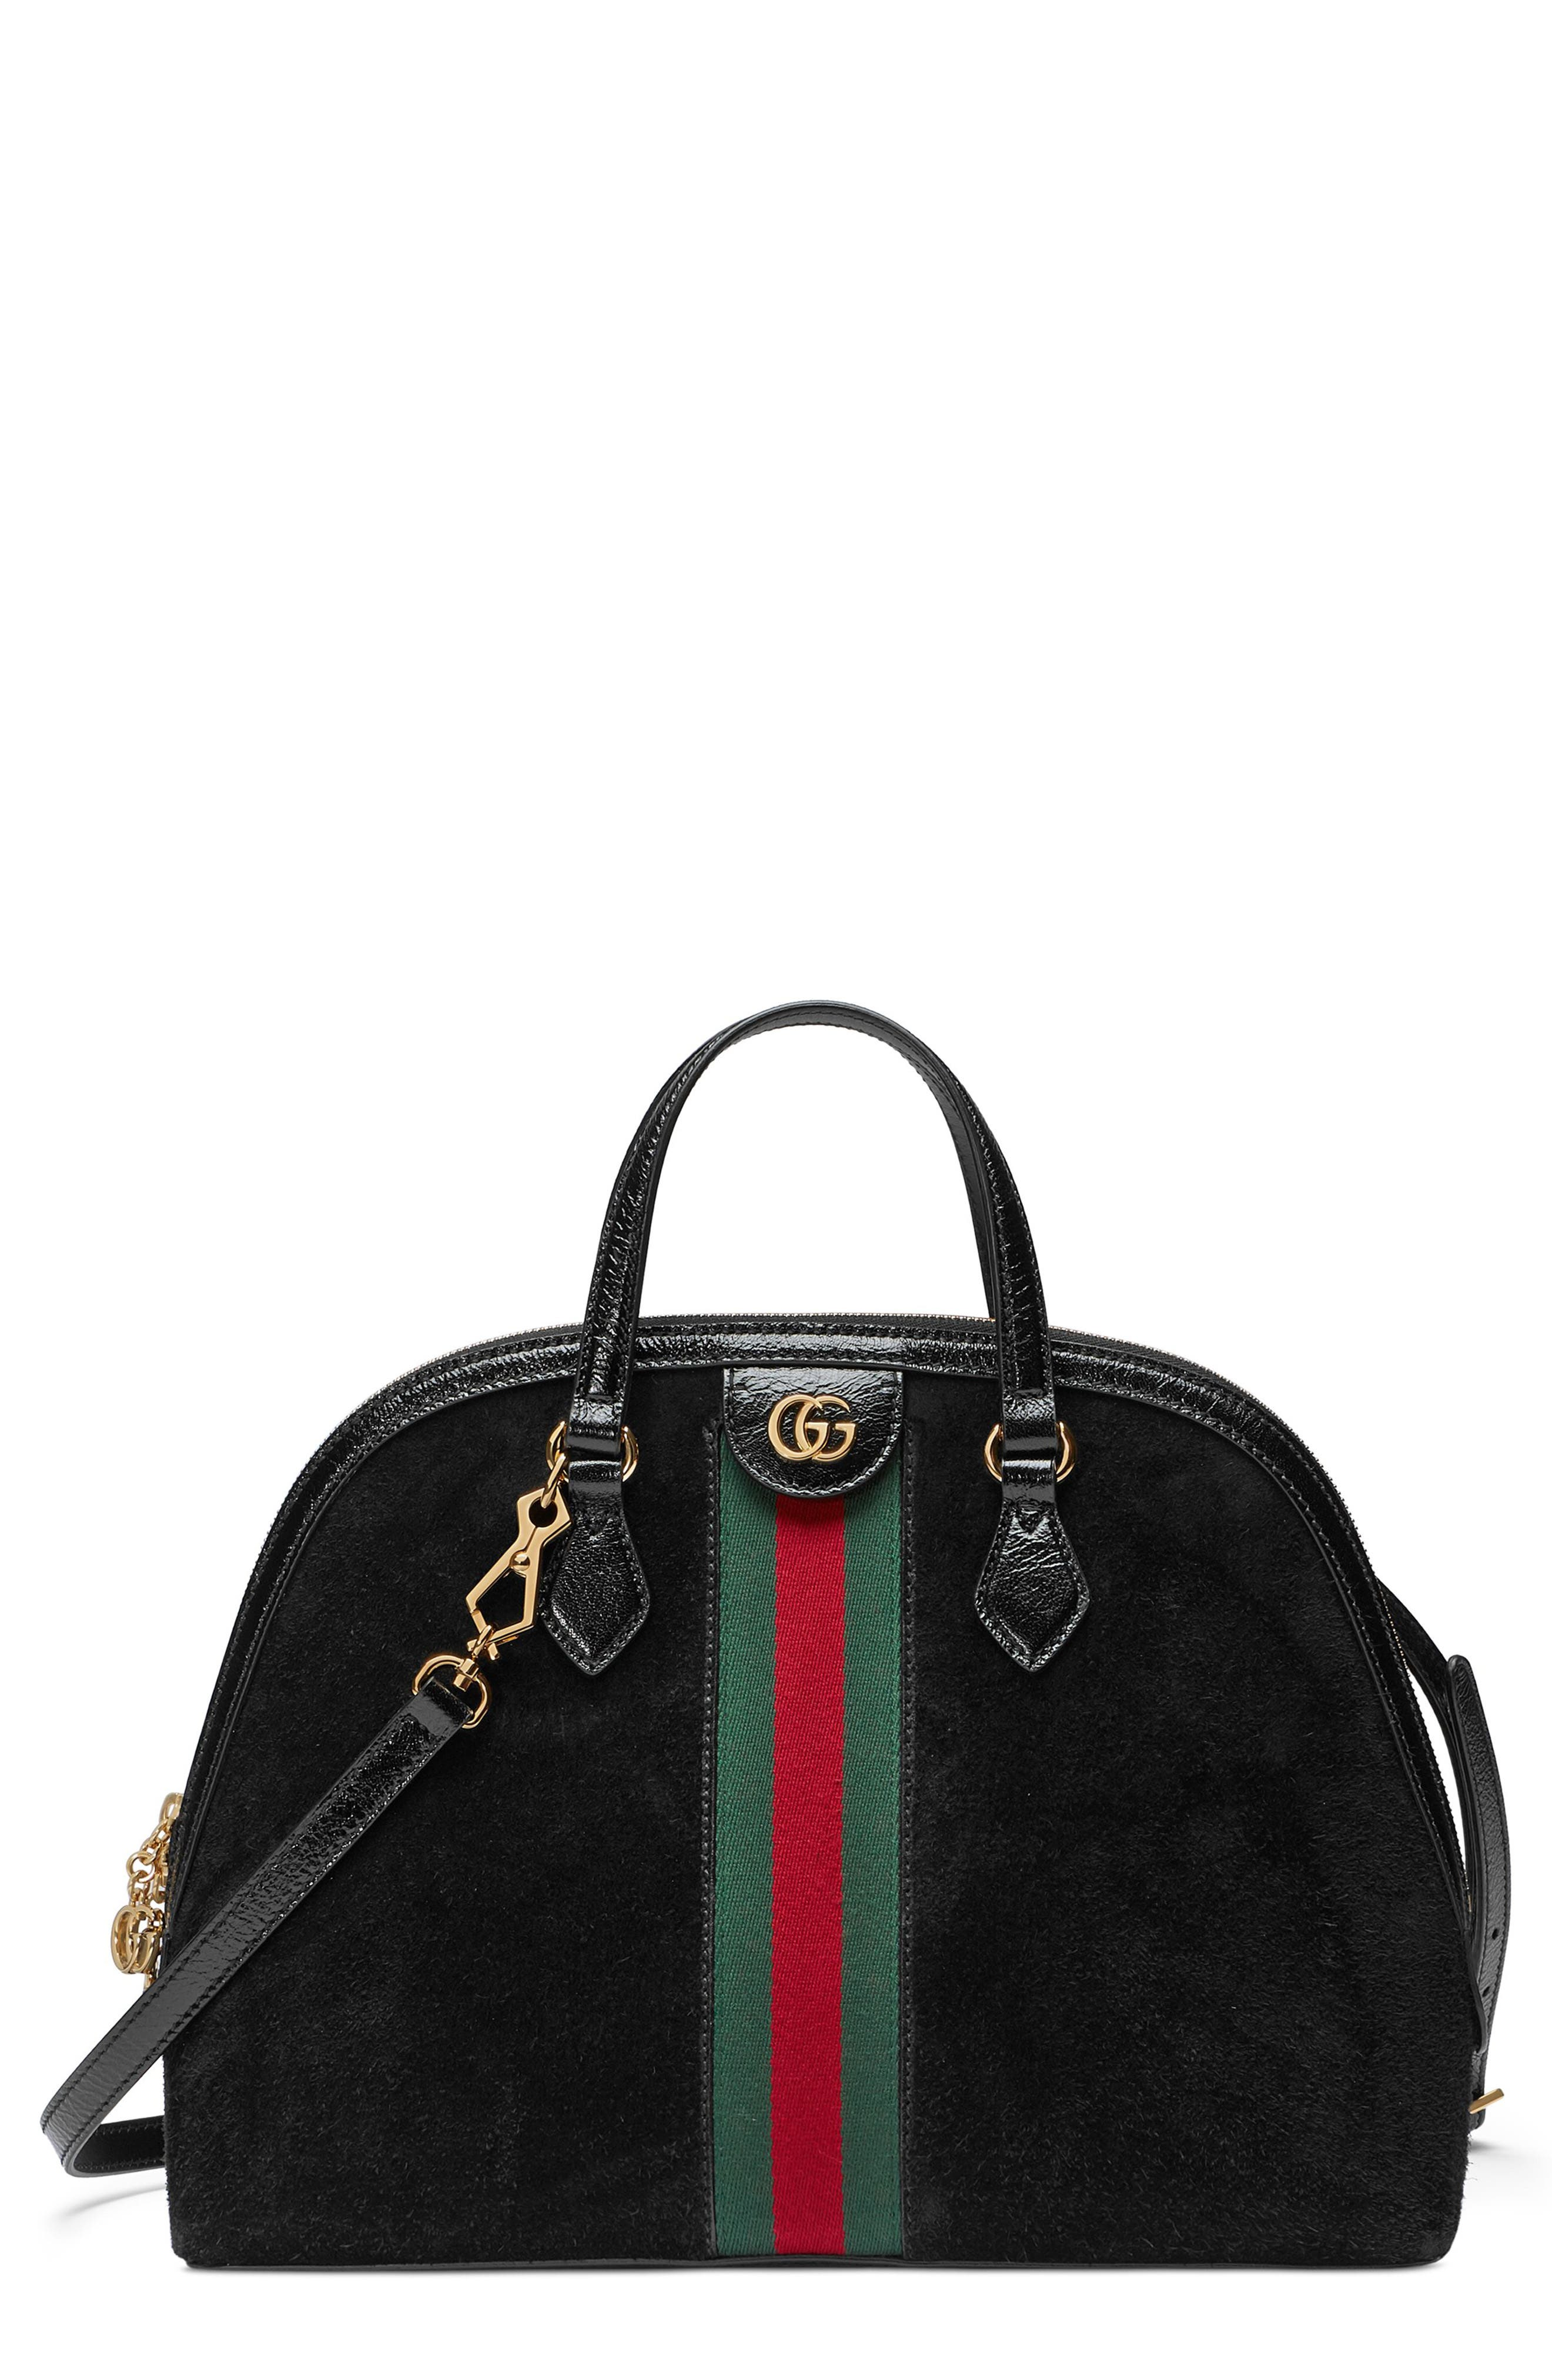 Ophidia Suede Dome Satchel,                         Main,                         color, NERO/ NERO/ VERT RED VERT